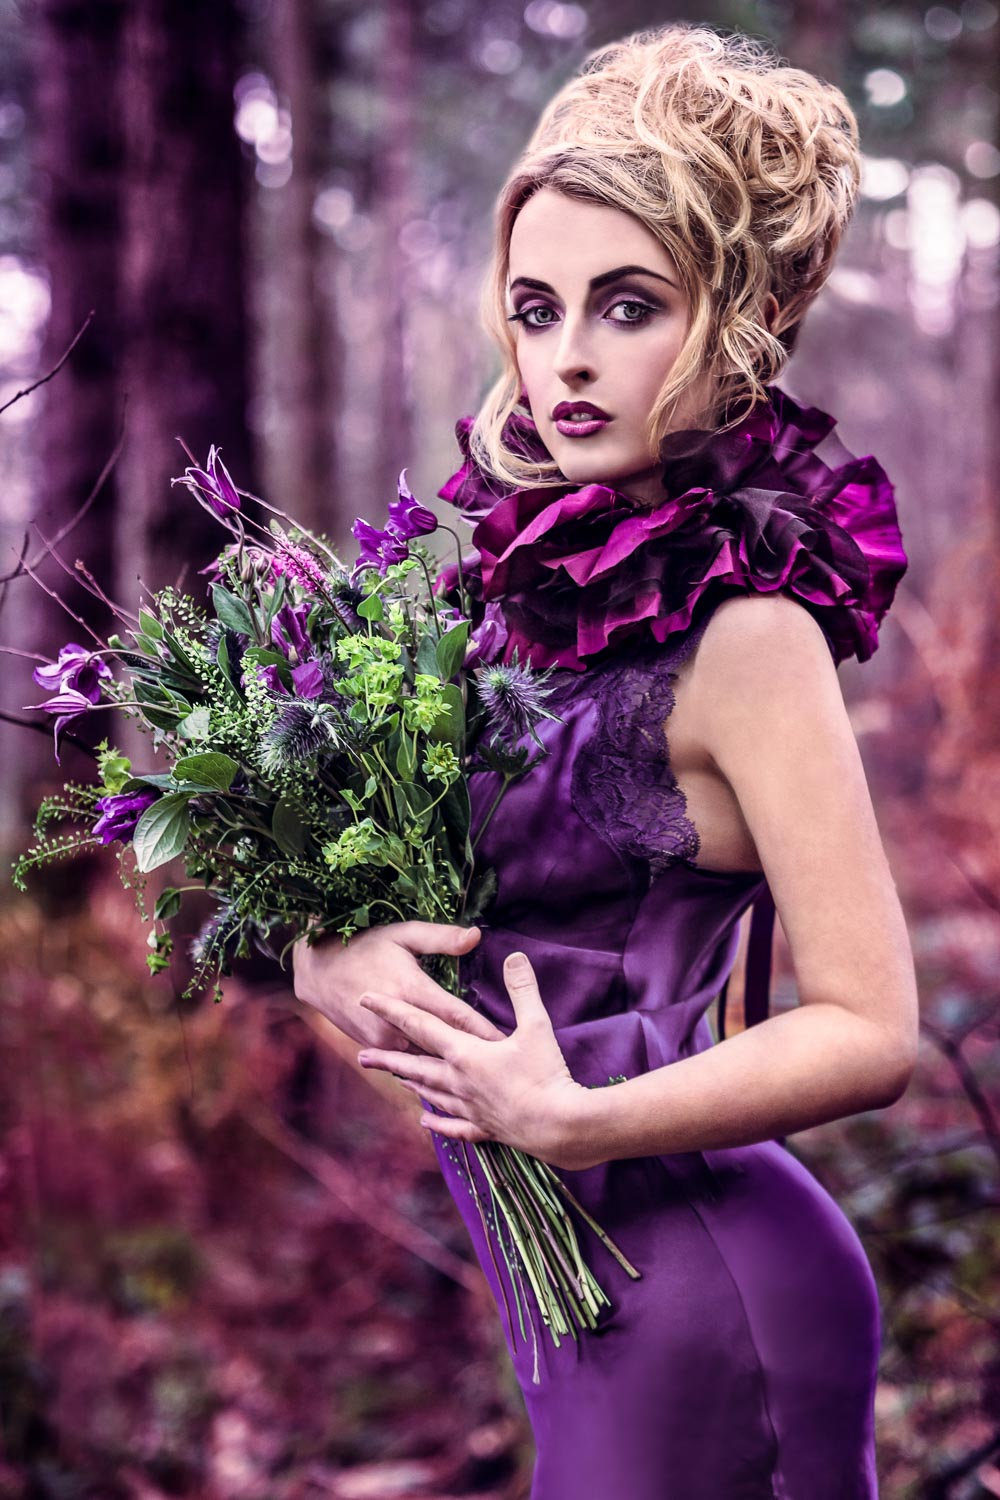 Female model dressed as a purple rose wearing a purple dress with purple flowers in an enchanted forest